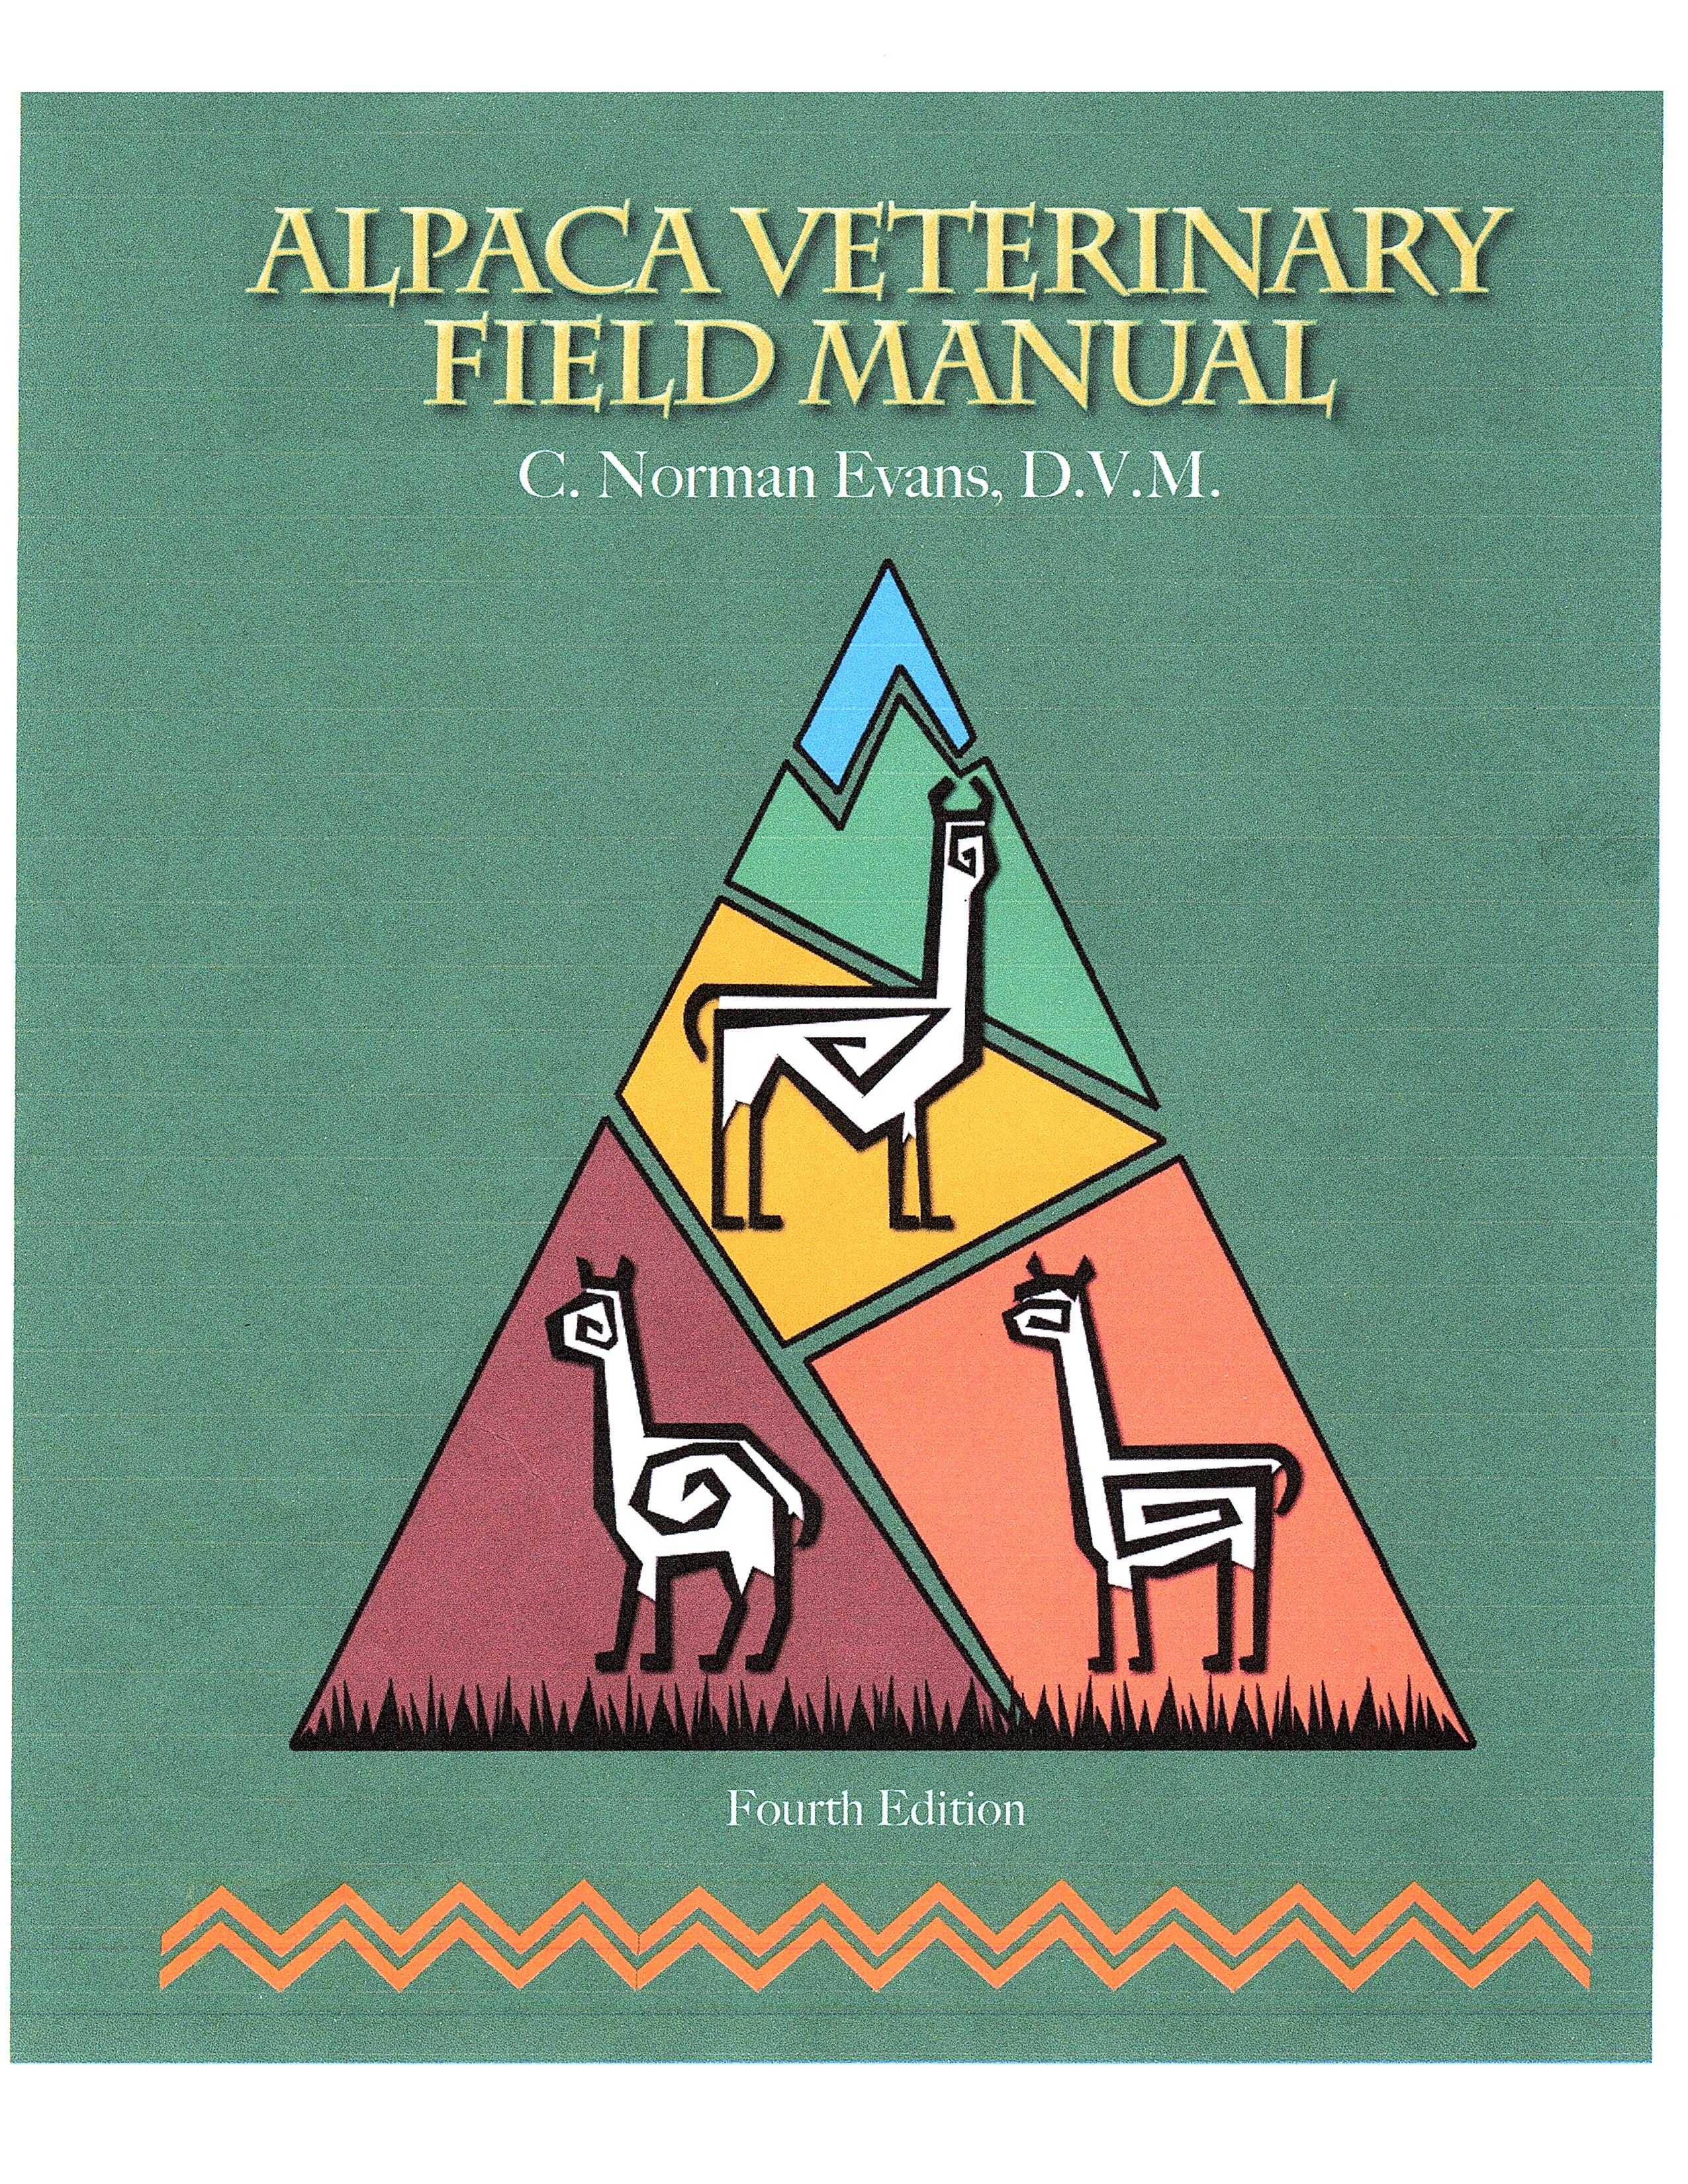 Dr Evans Field manual 4th edition